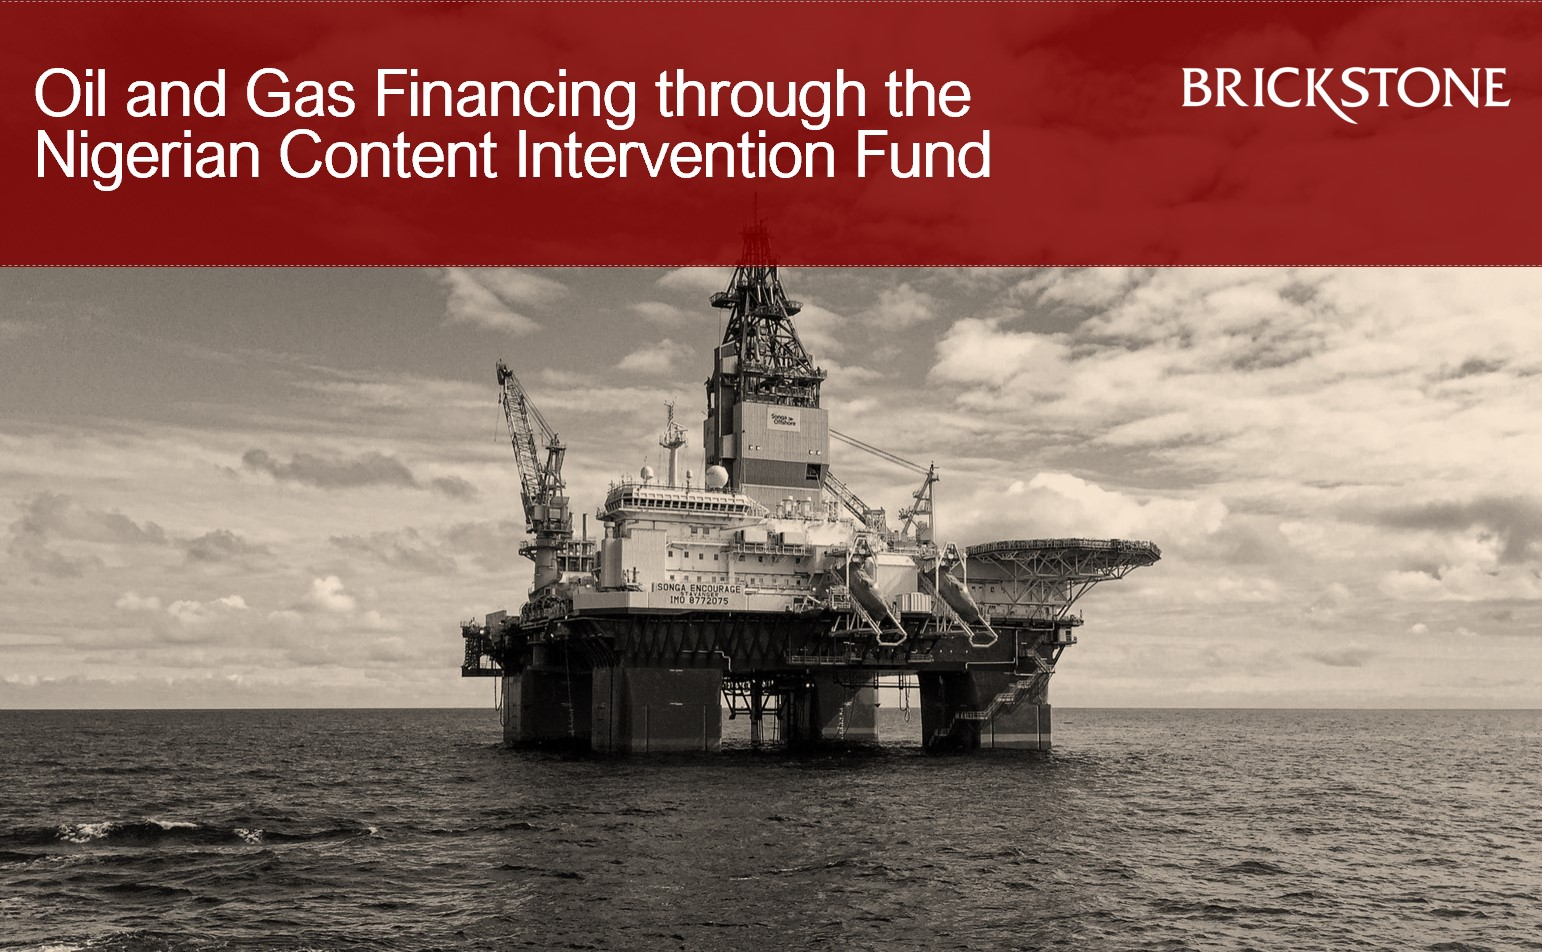 Oil and Gas Financing through the Nigerian Content Intervention (NCI) Fund